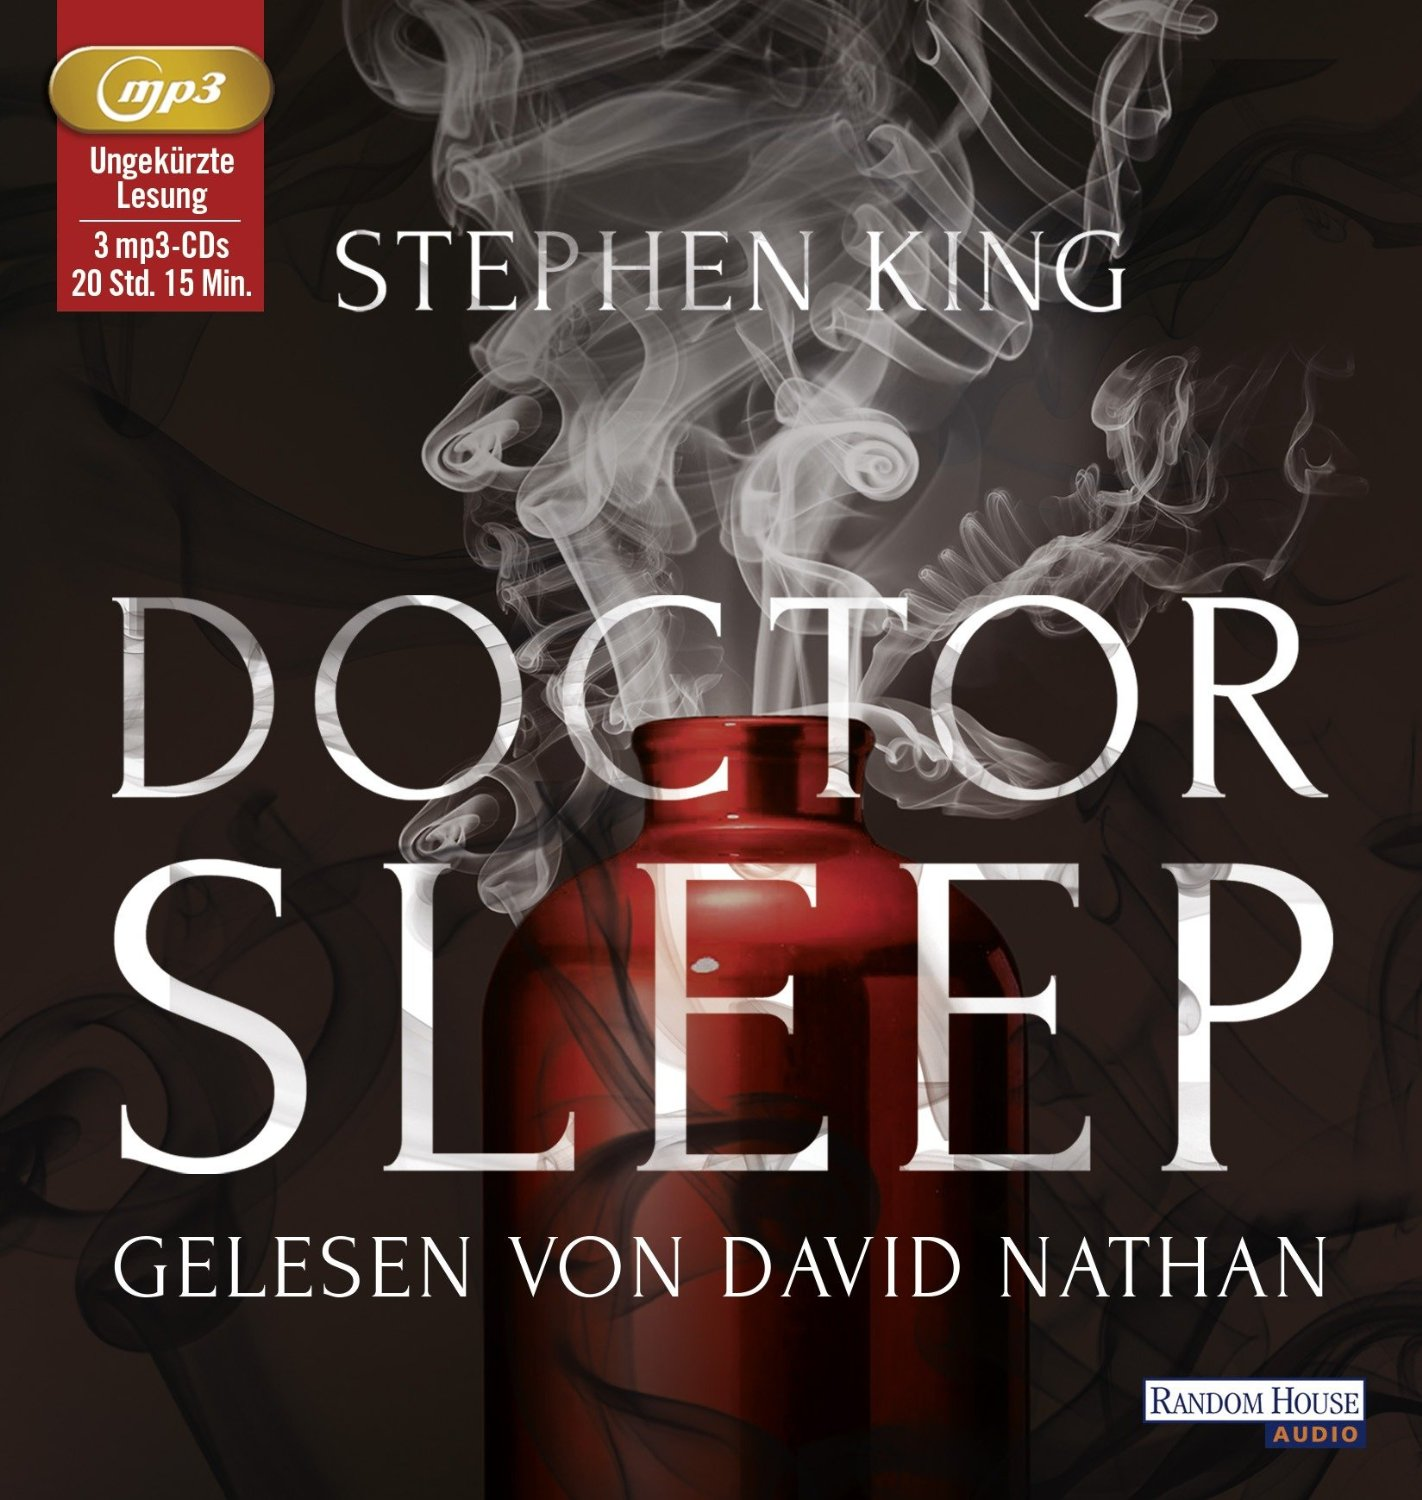 Hörbuchcover Doctor Sleep Stephen KIng